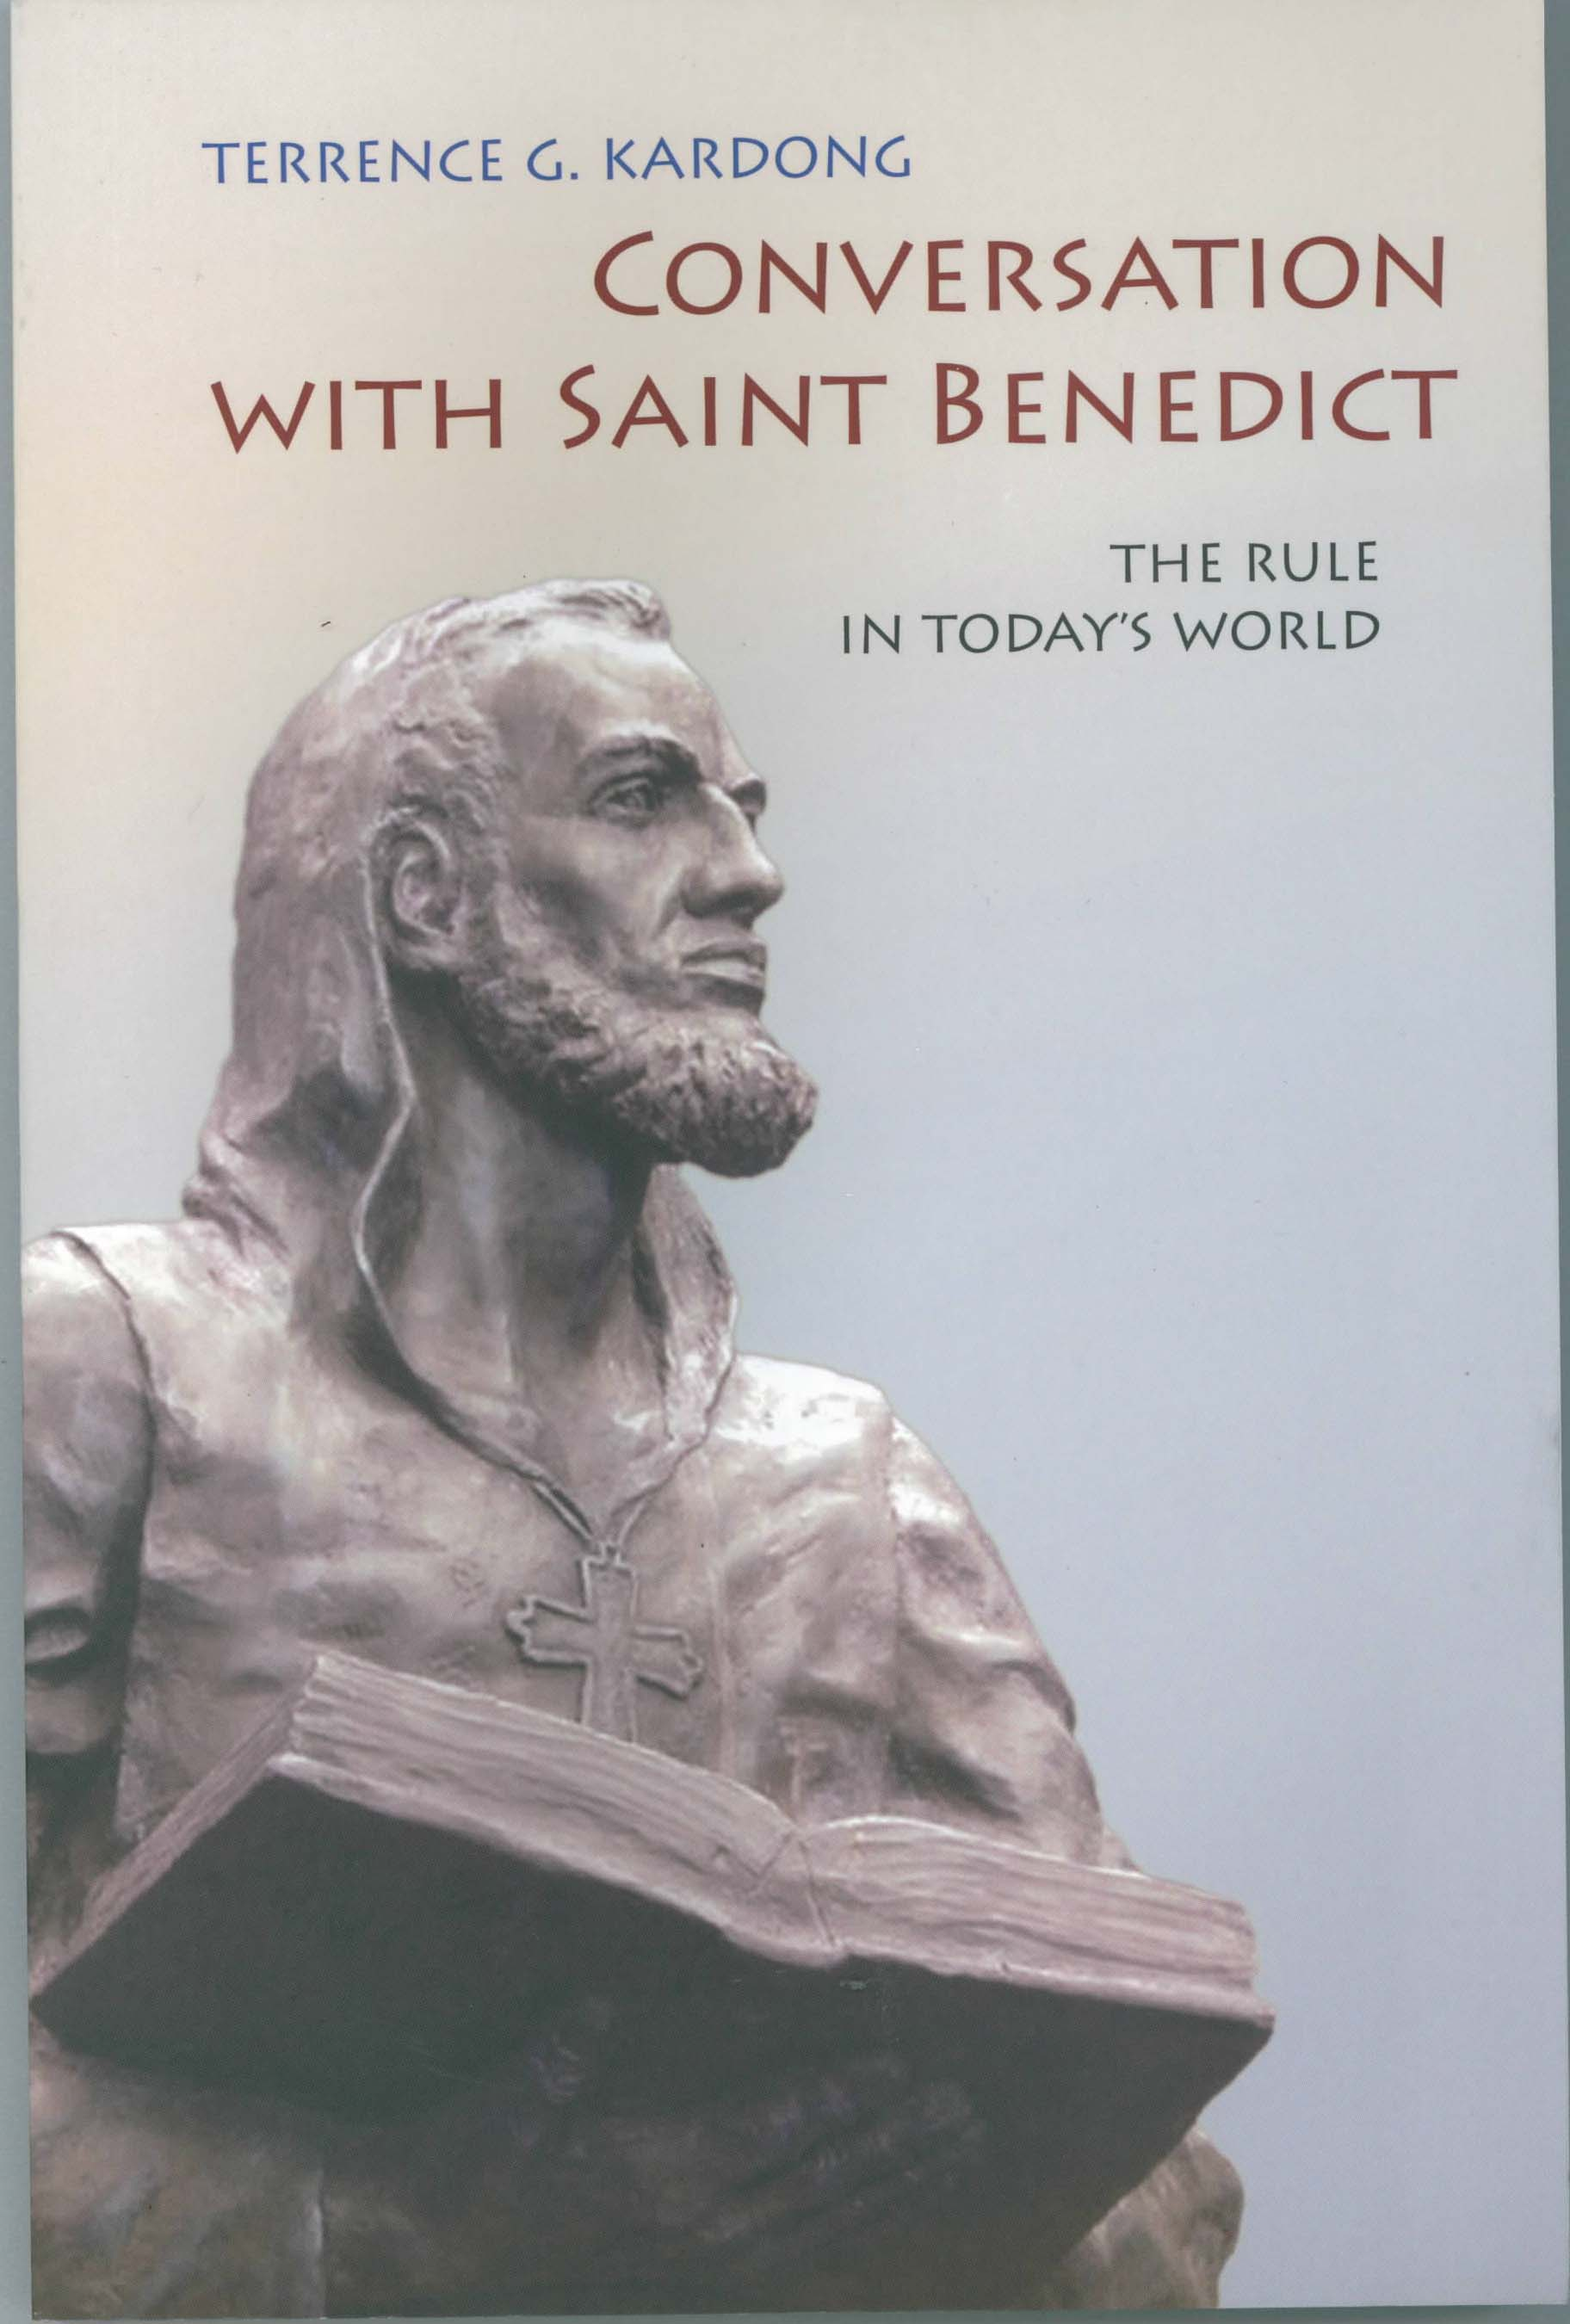 Conversation With Saint Benedict by Terrence G. Kardong 108-9780814634196